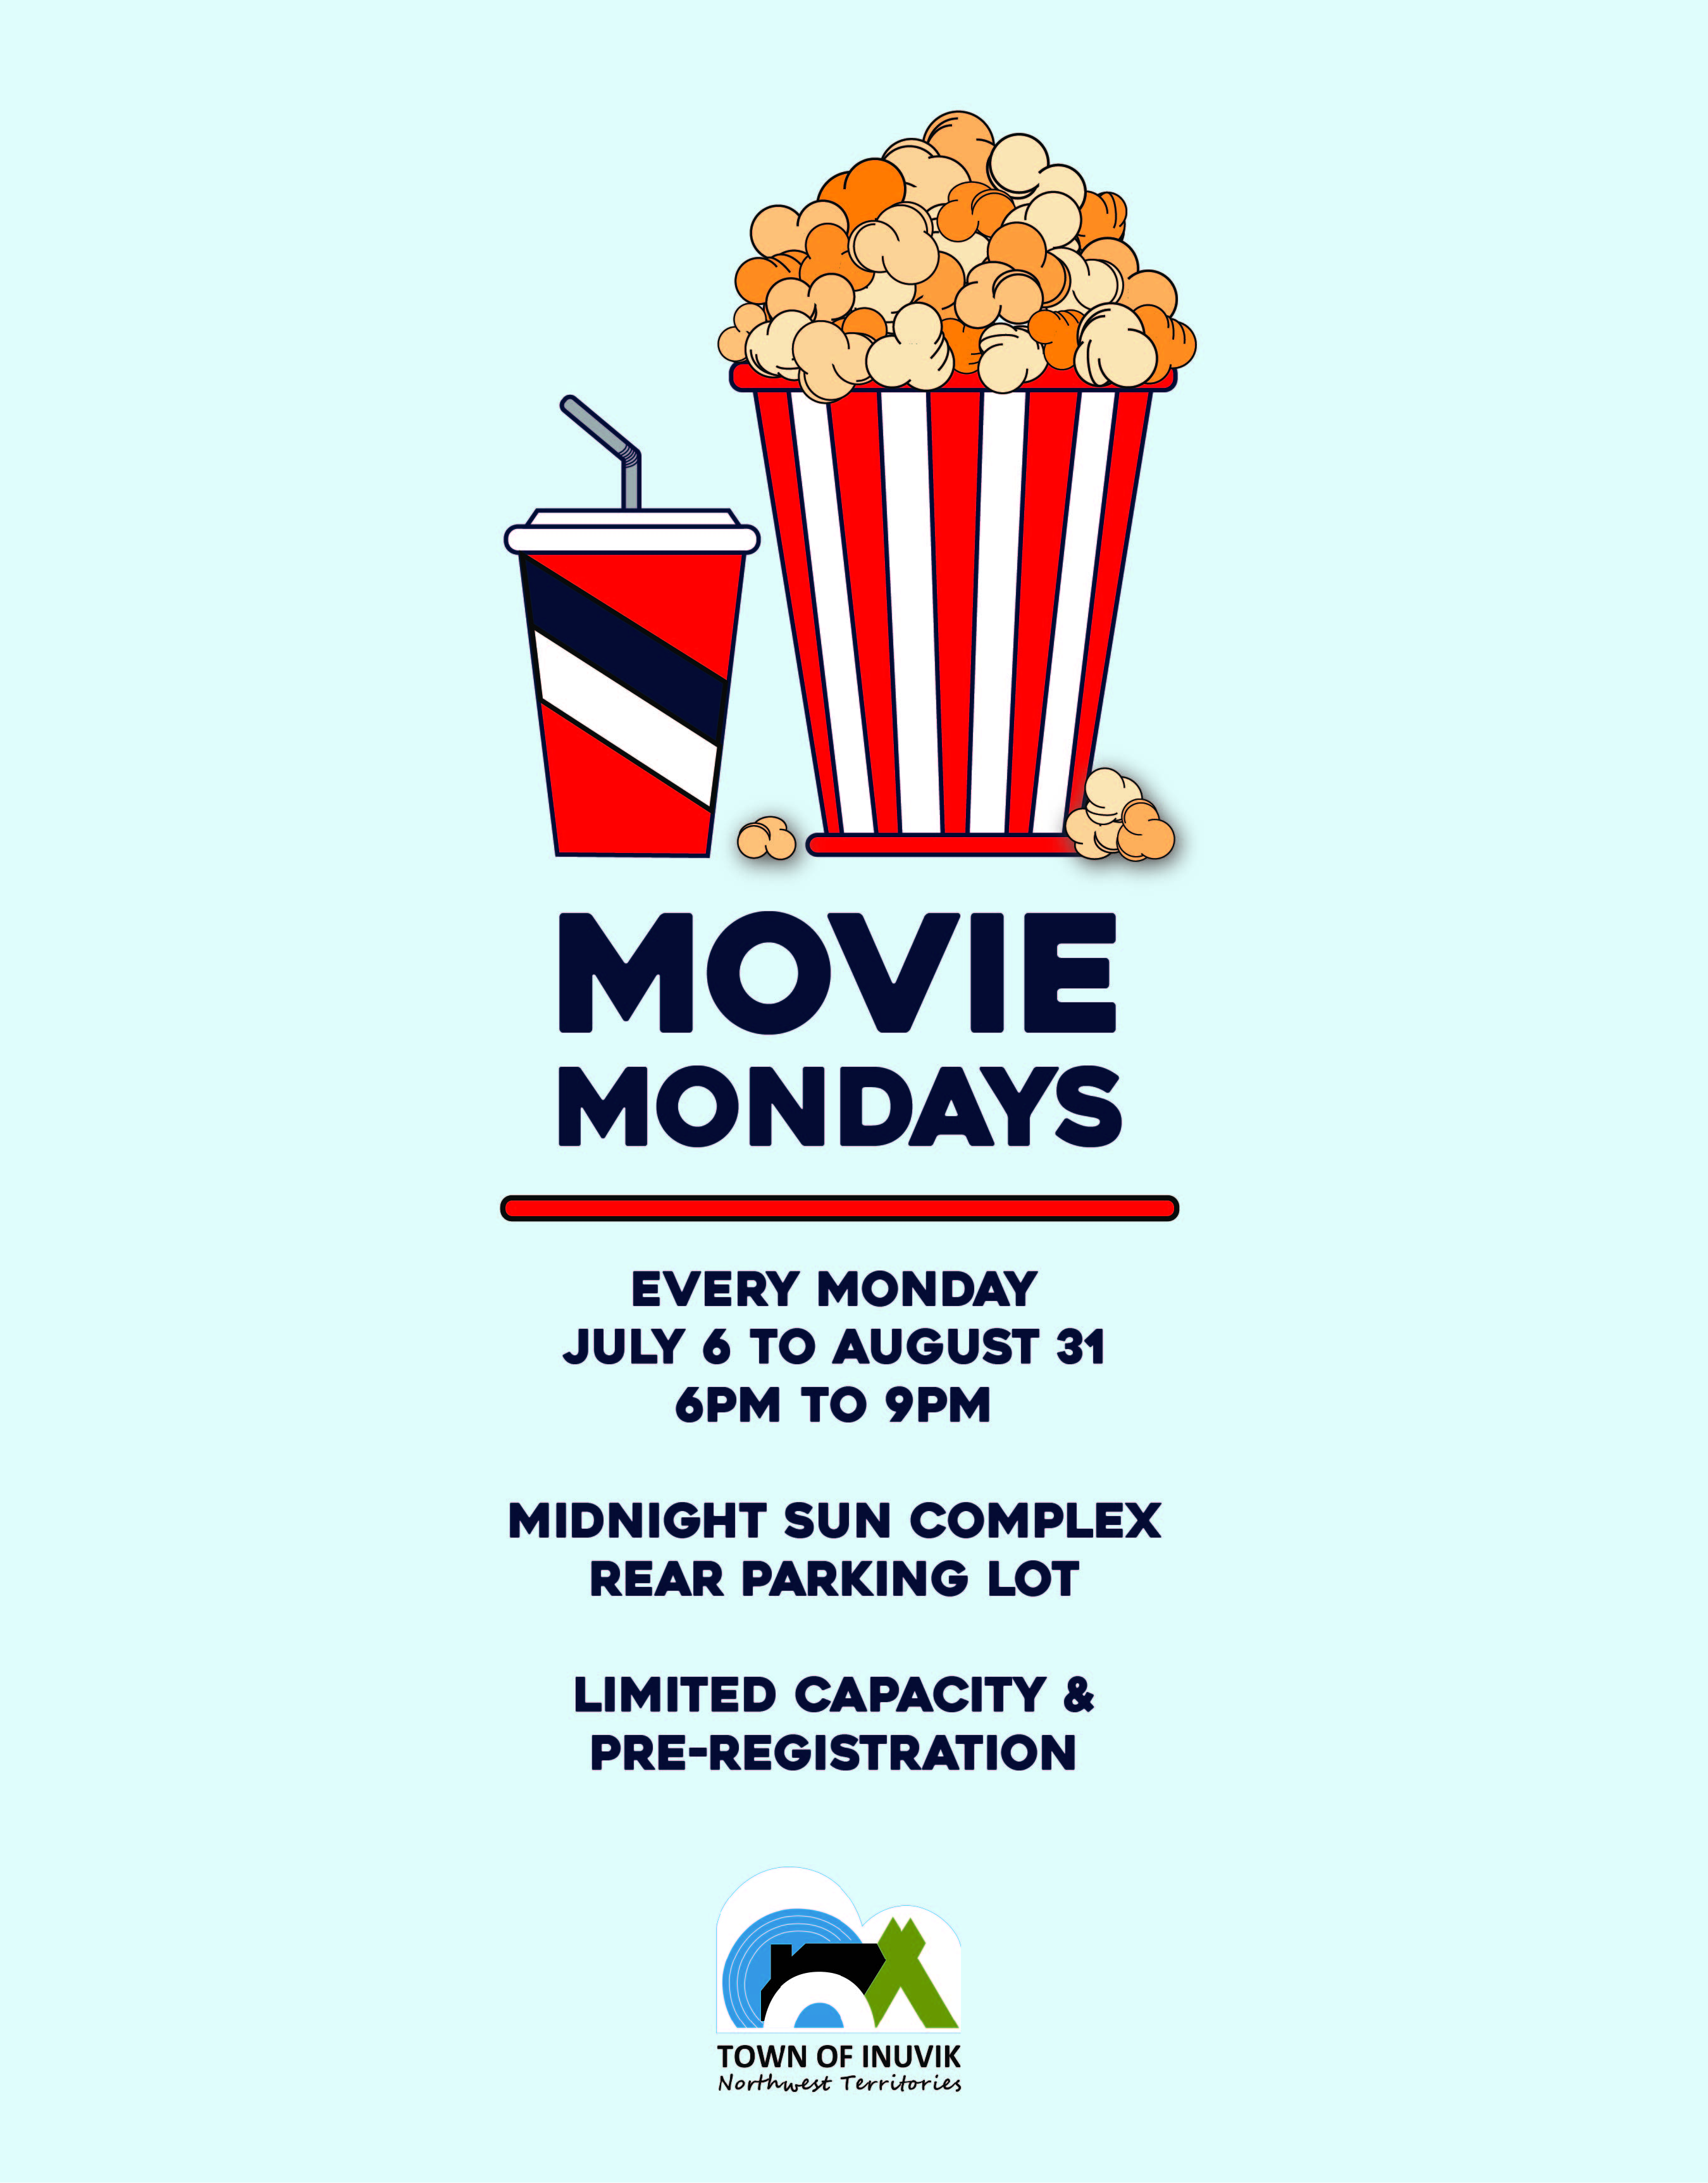 Movie Mondays